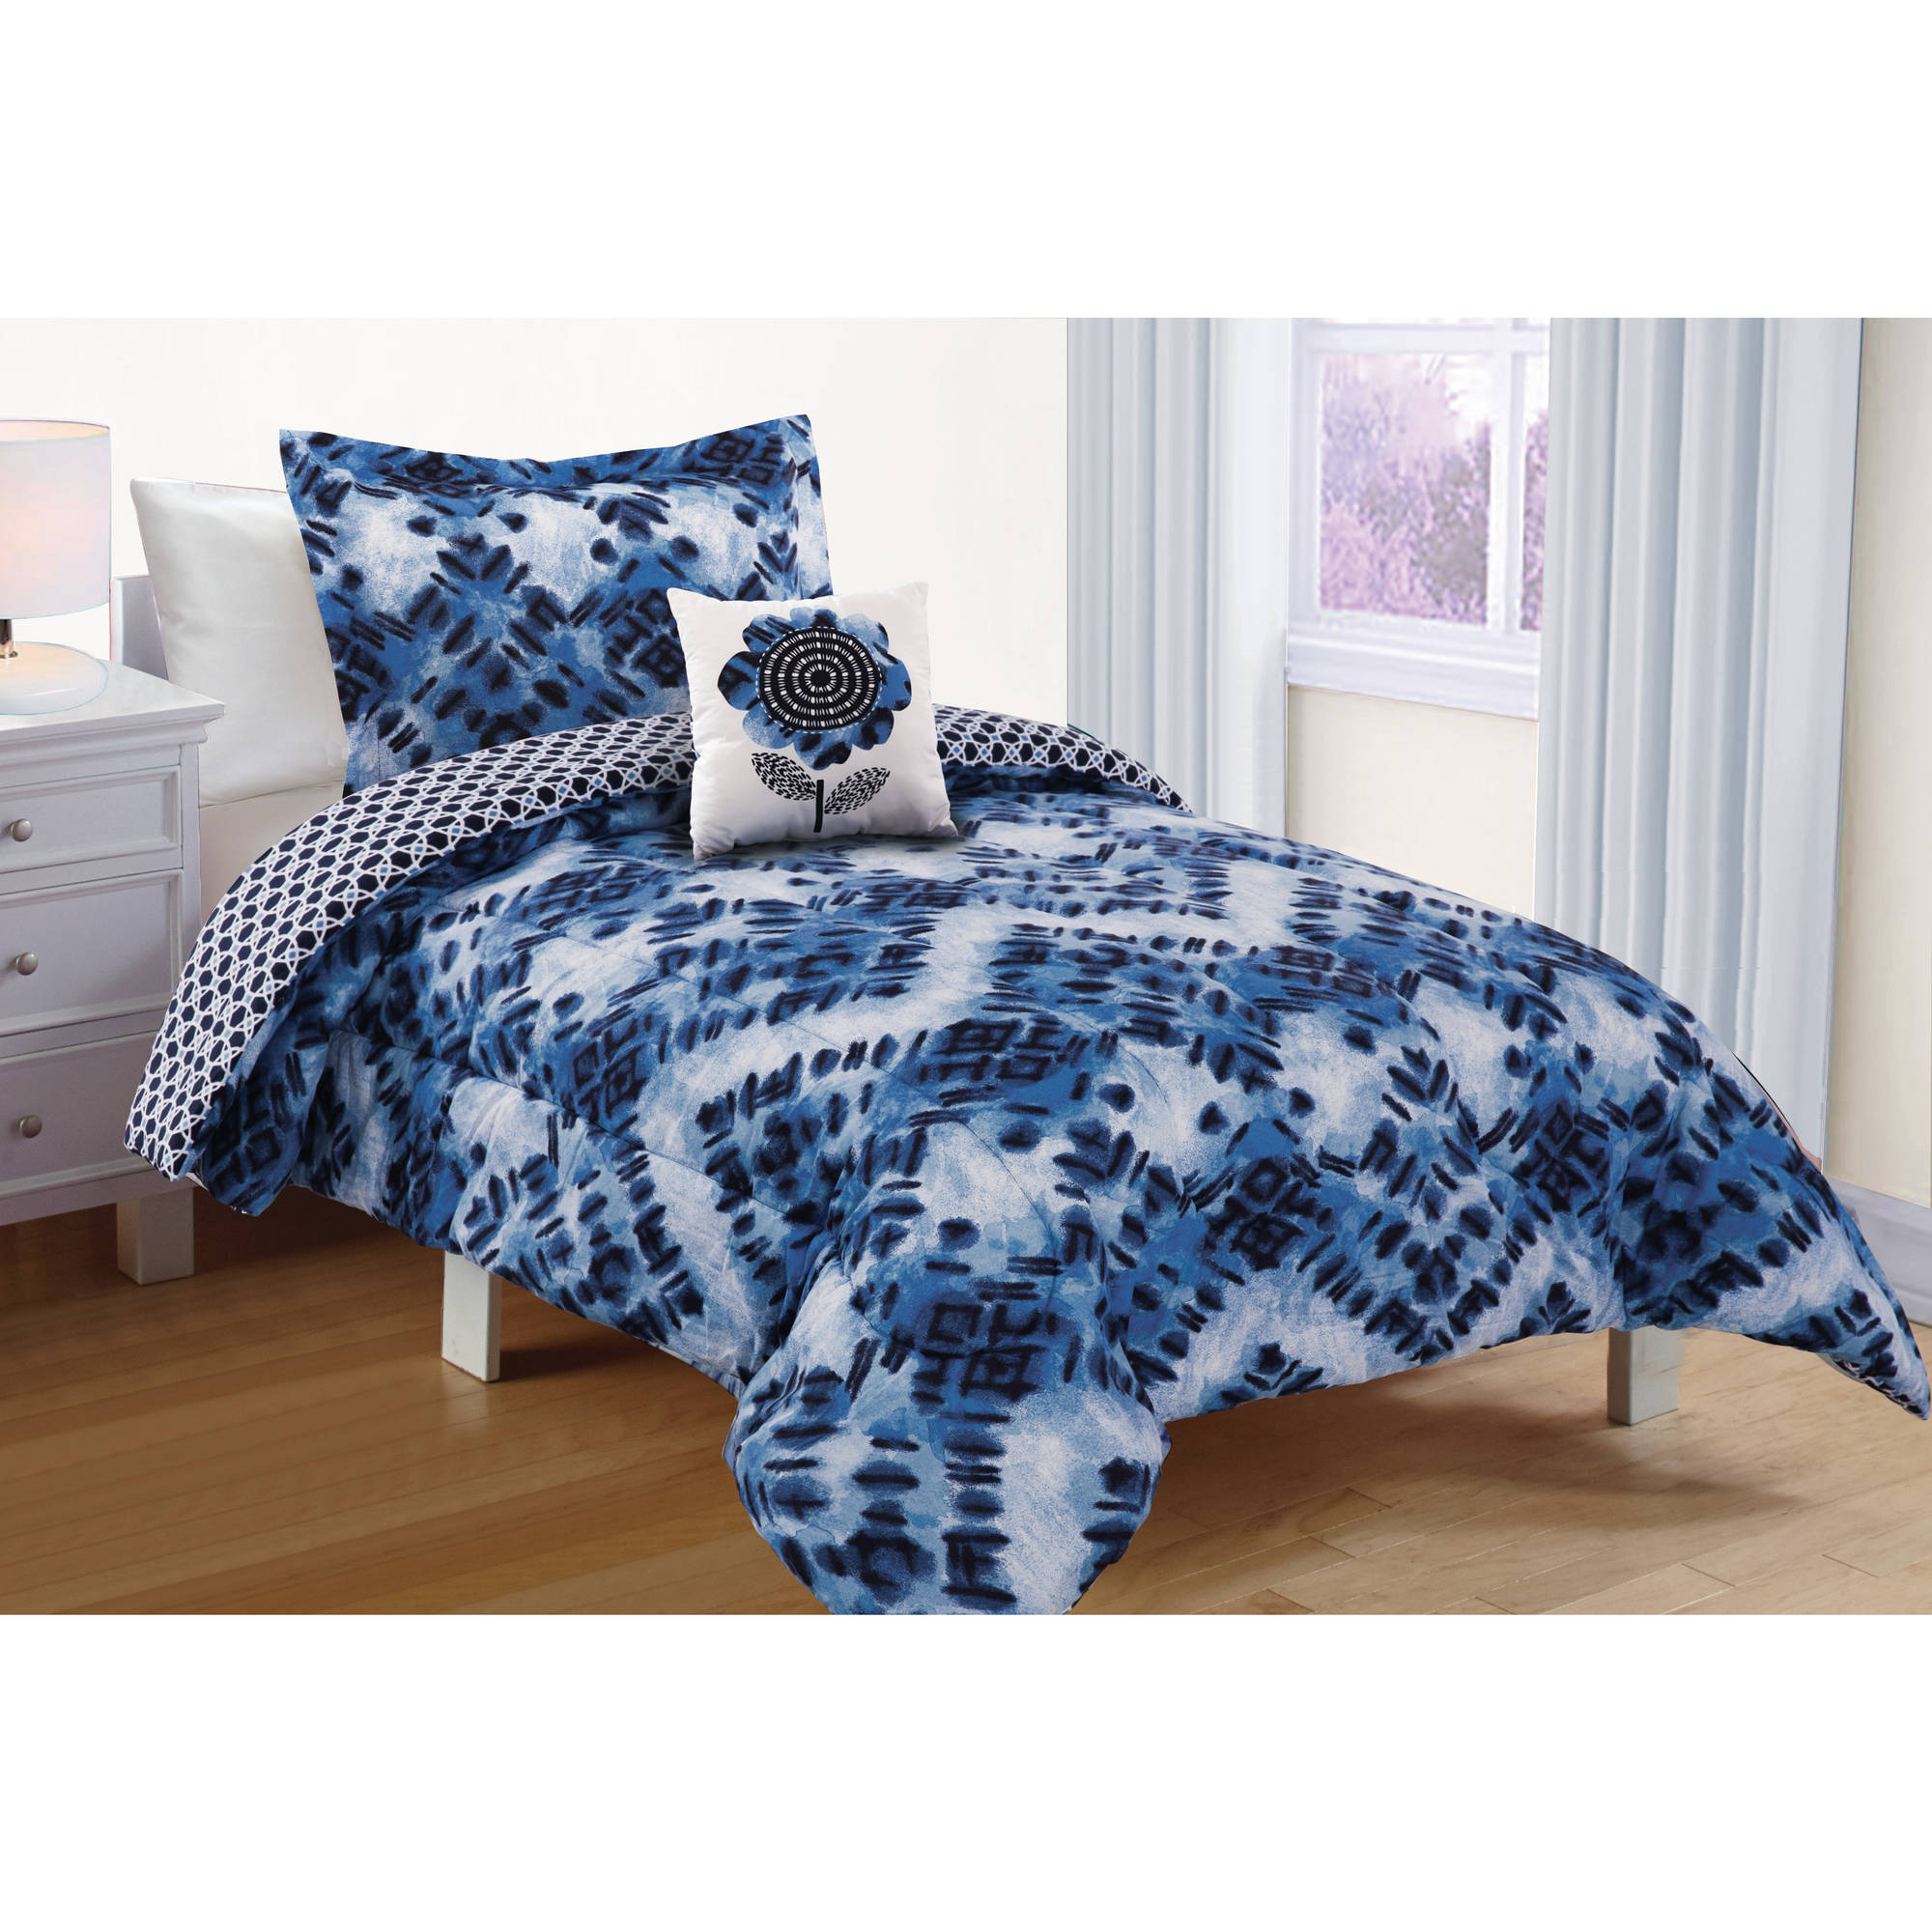 Better Homes & Gardens Kids Watercolor Shibori Comforter Set